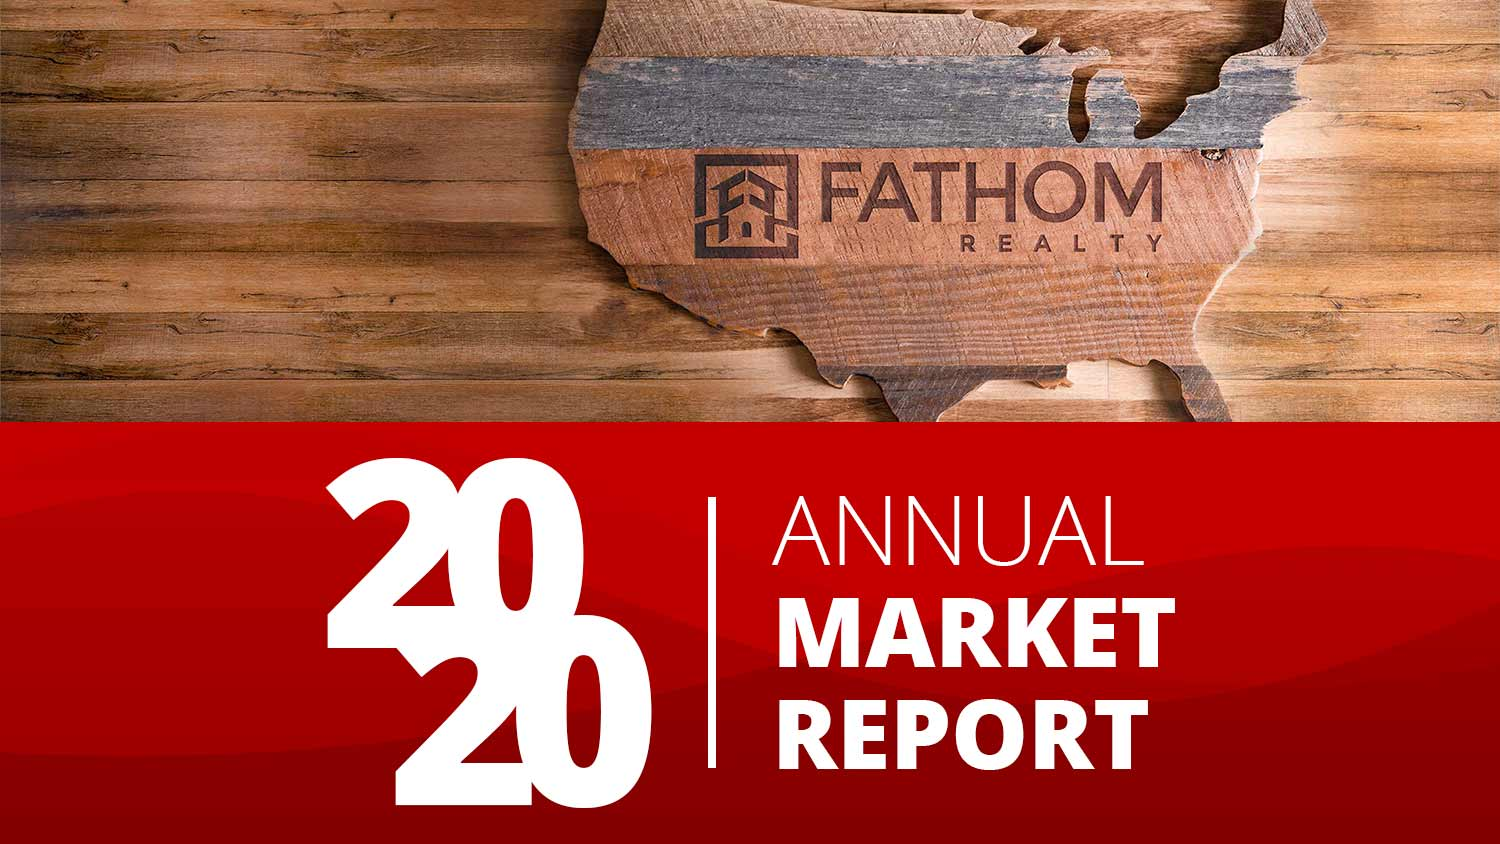 """Featured image for """"Fathom Annual Market Report 2020"""""""